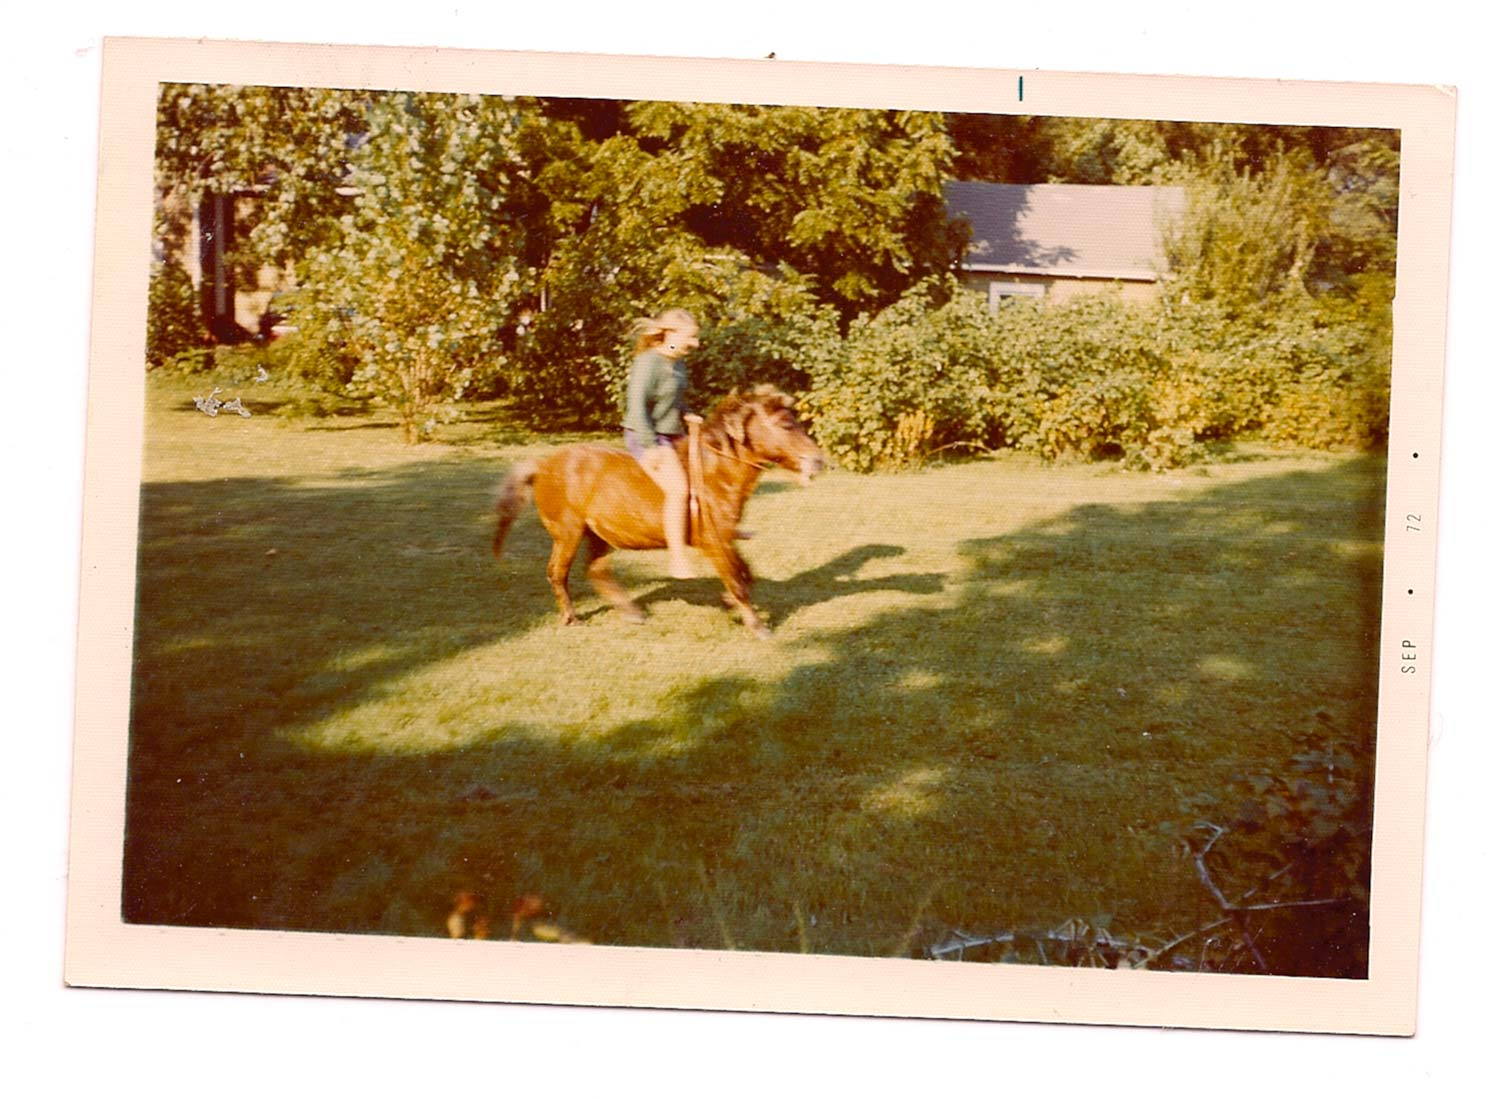 CJA with Jimmy the pony, a year before his death.